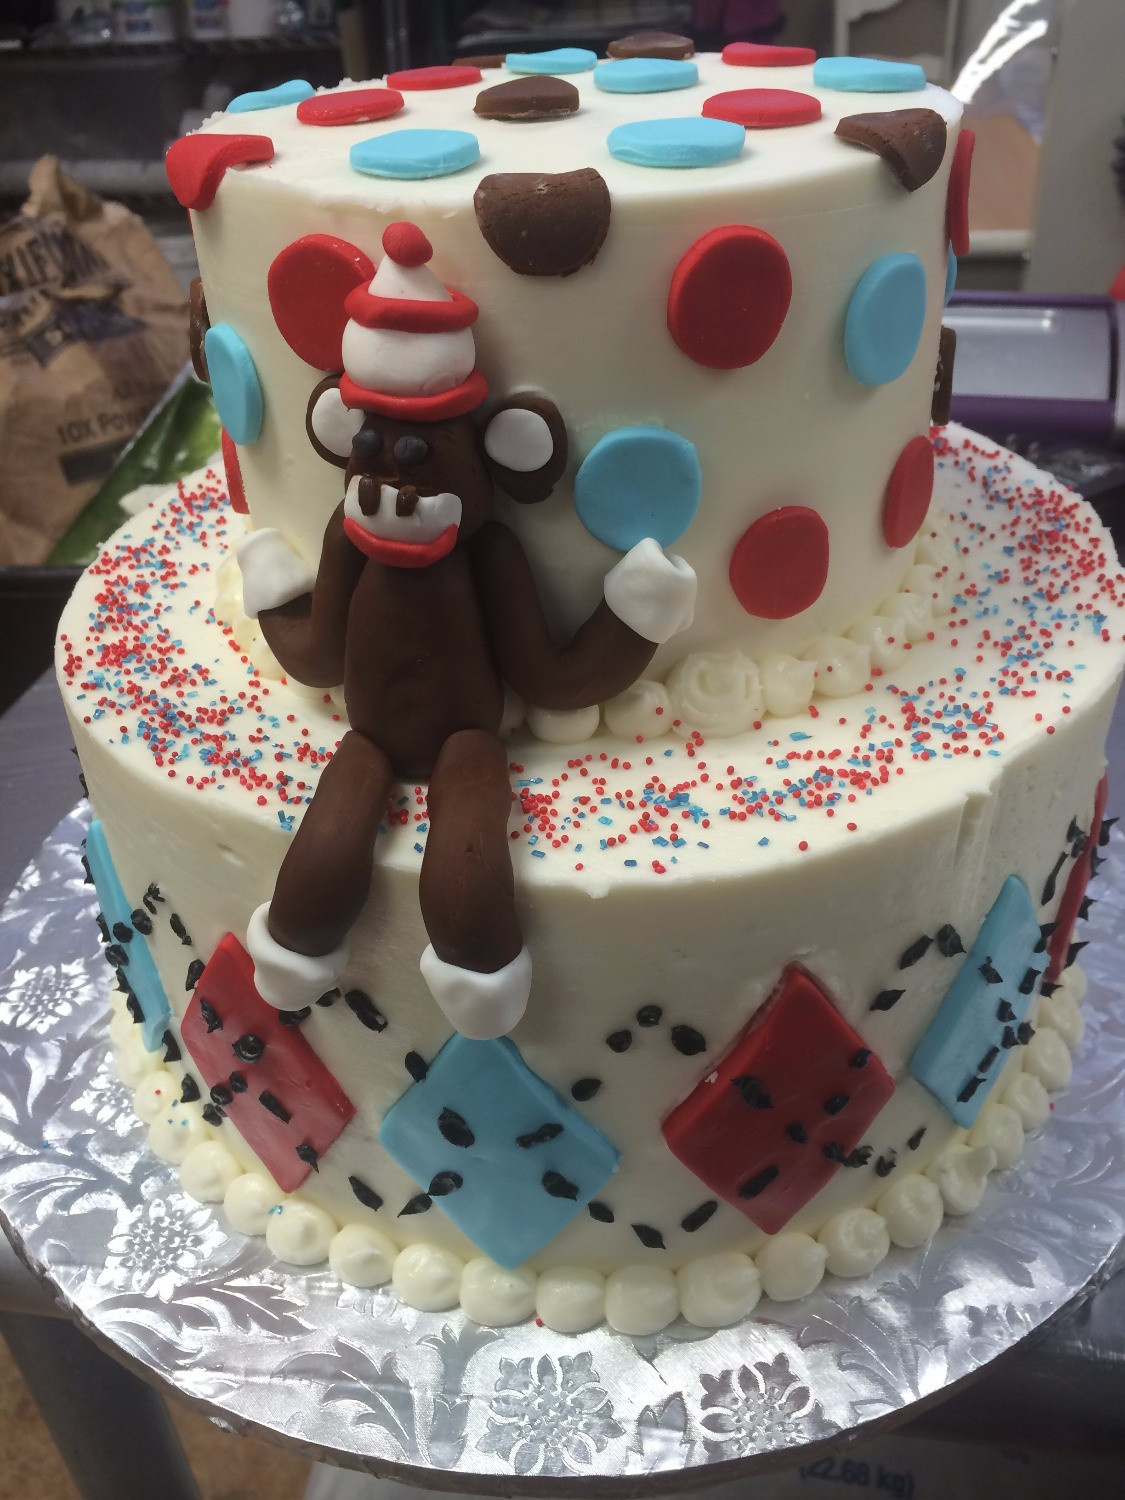 Pleasant Sock Monkey Birthday Cake Funny Birthday Cards Online Barepcheapnameinfo